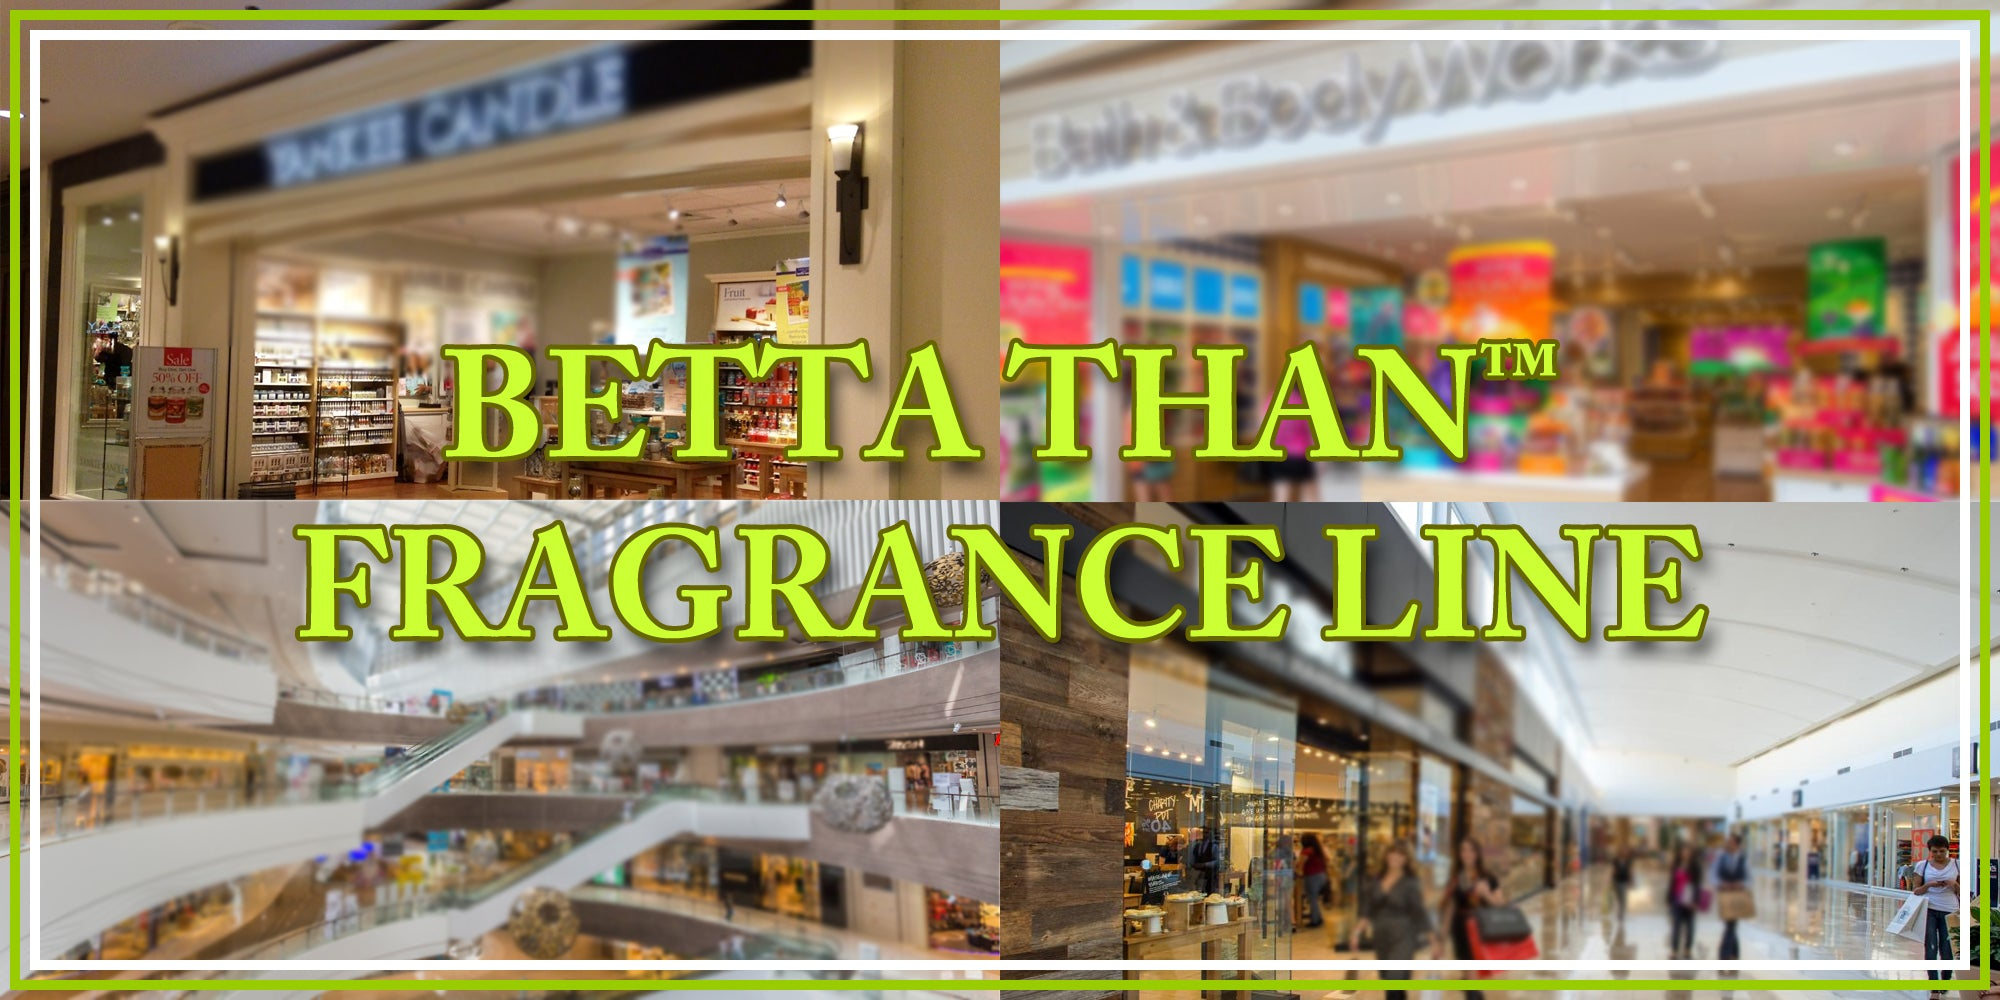 OverSoyed Fine Organic Products - Betta Than™ Fragrance Line